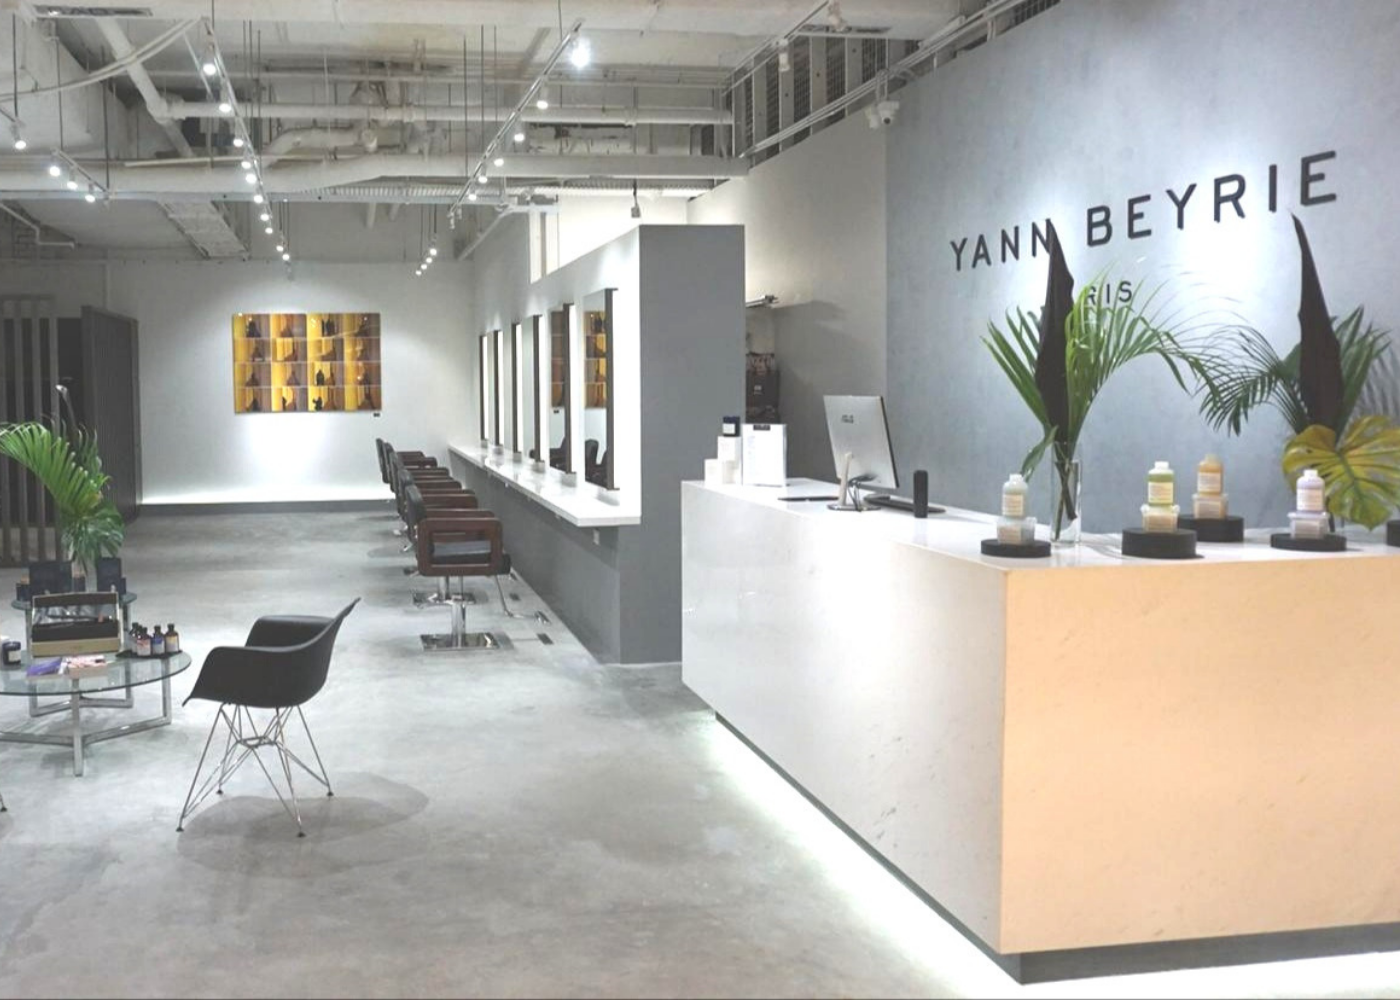 Yann Beyrie | Hair salons in Singapore